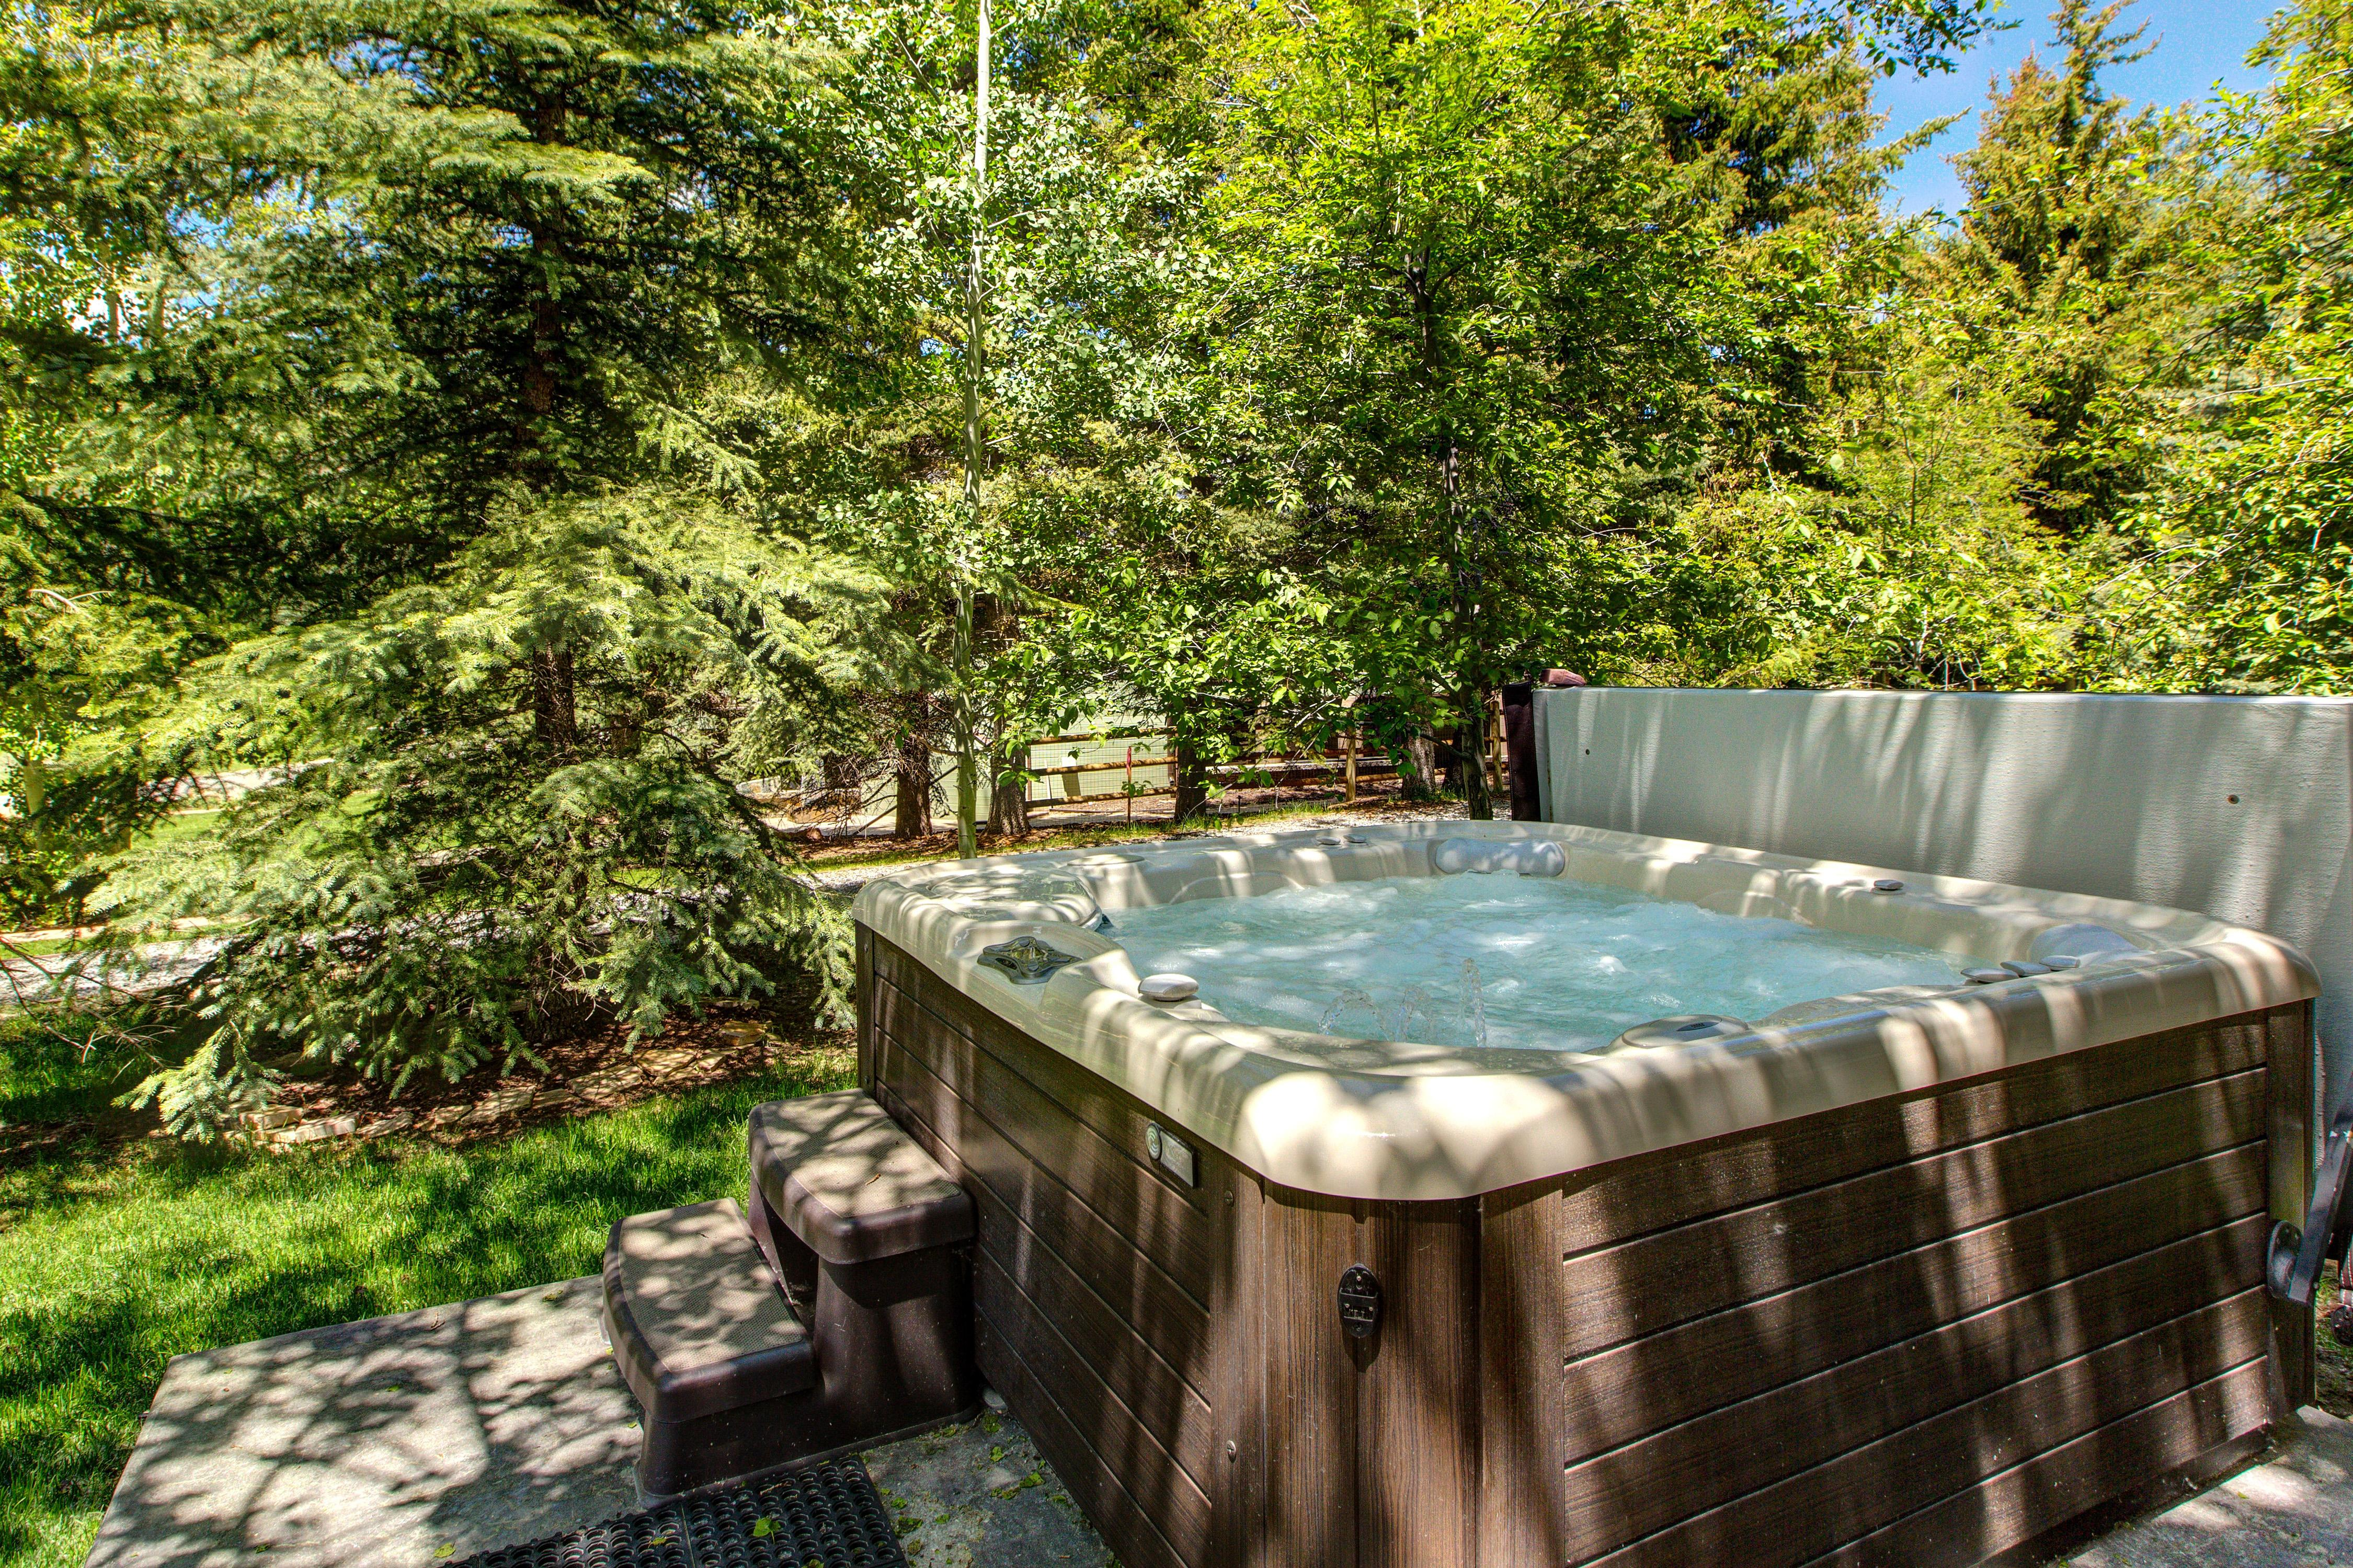 Fire up the bubbles in your private hot tub!